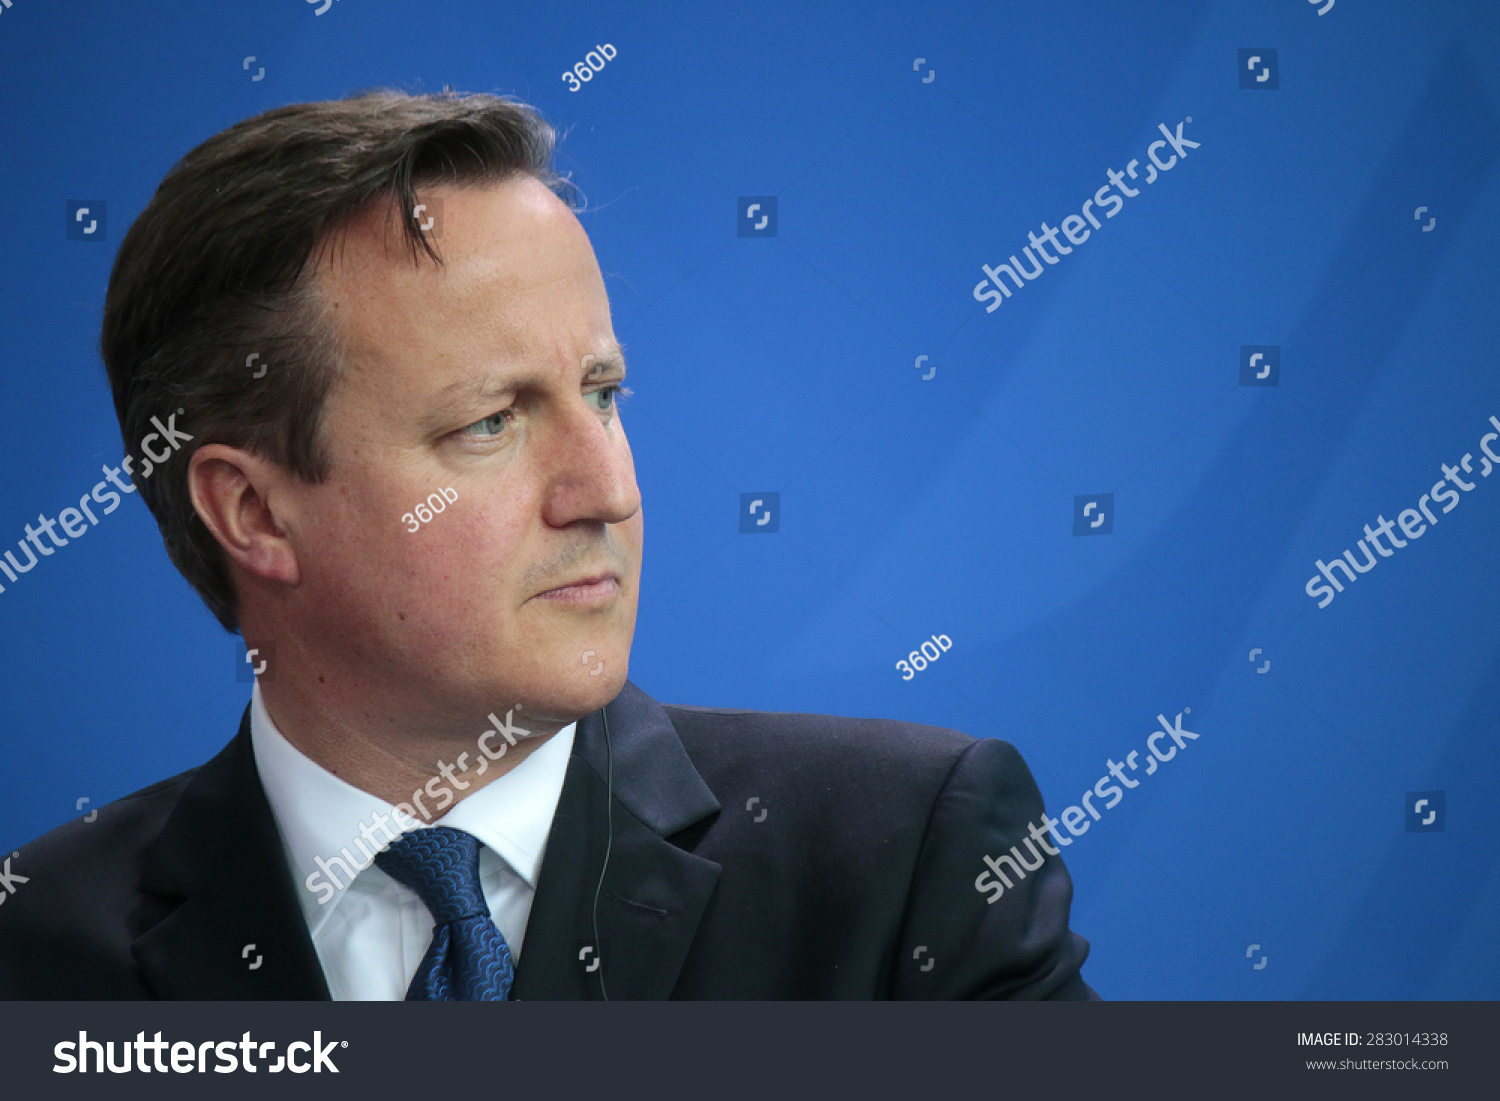 MAY 29 2015 BERLIN British Prime Minister David Cameron at a press conference after a meeting with the German Chancellor in the Federal Chancellery in Berlin